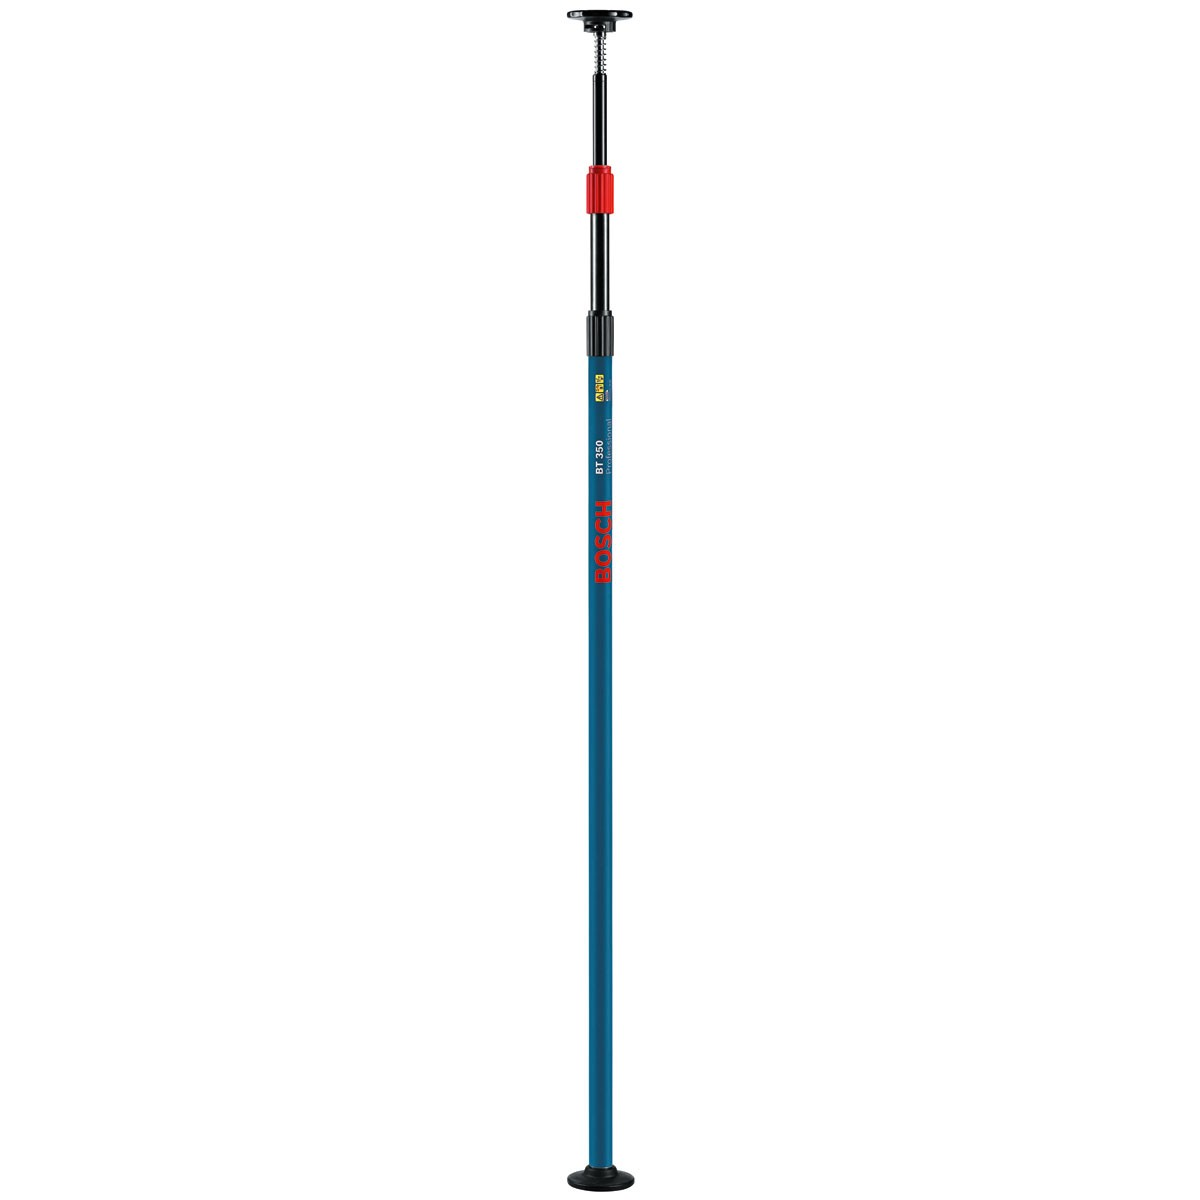 Bosch BT 350 140-350cm Telescopic Pole with Mounting Bracket